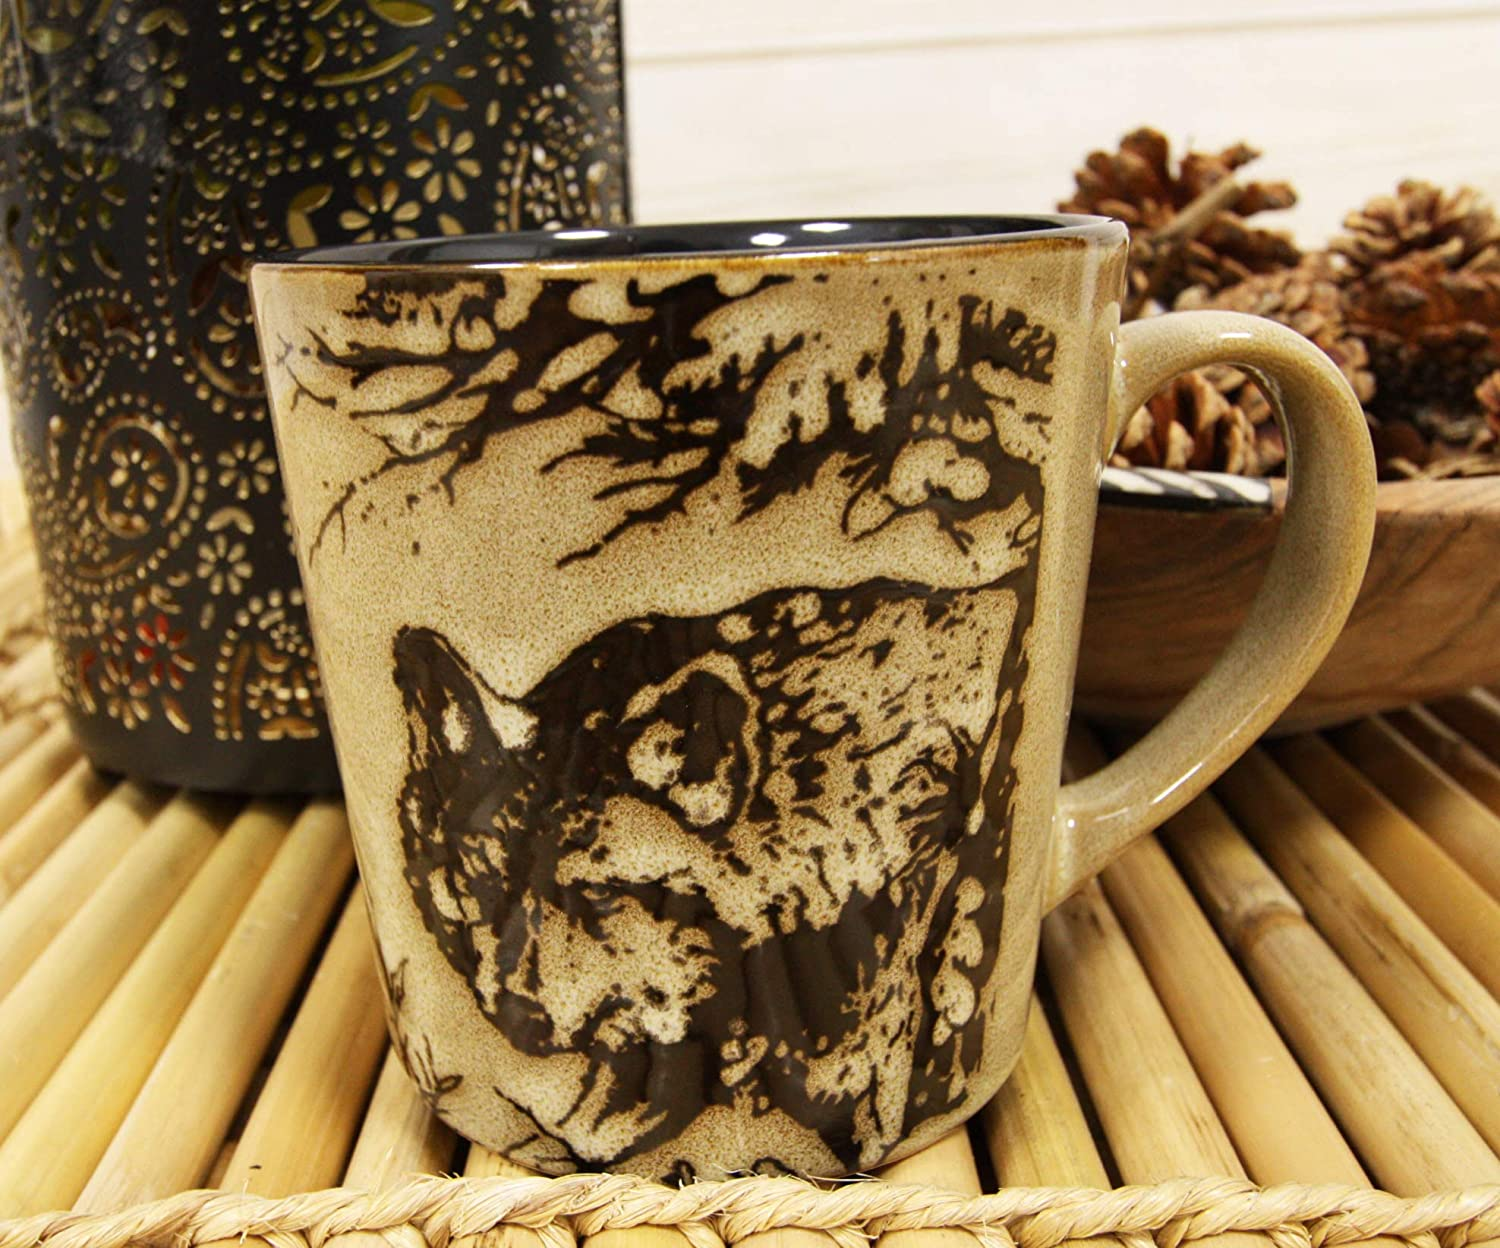 Ebros Wildlife Prowling Alpha Wolf Coffee Mug 16oz Ceramic Cup Glazed Stoneware Rustic Western Home Kitchen Decorative Mugs